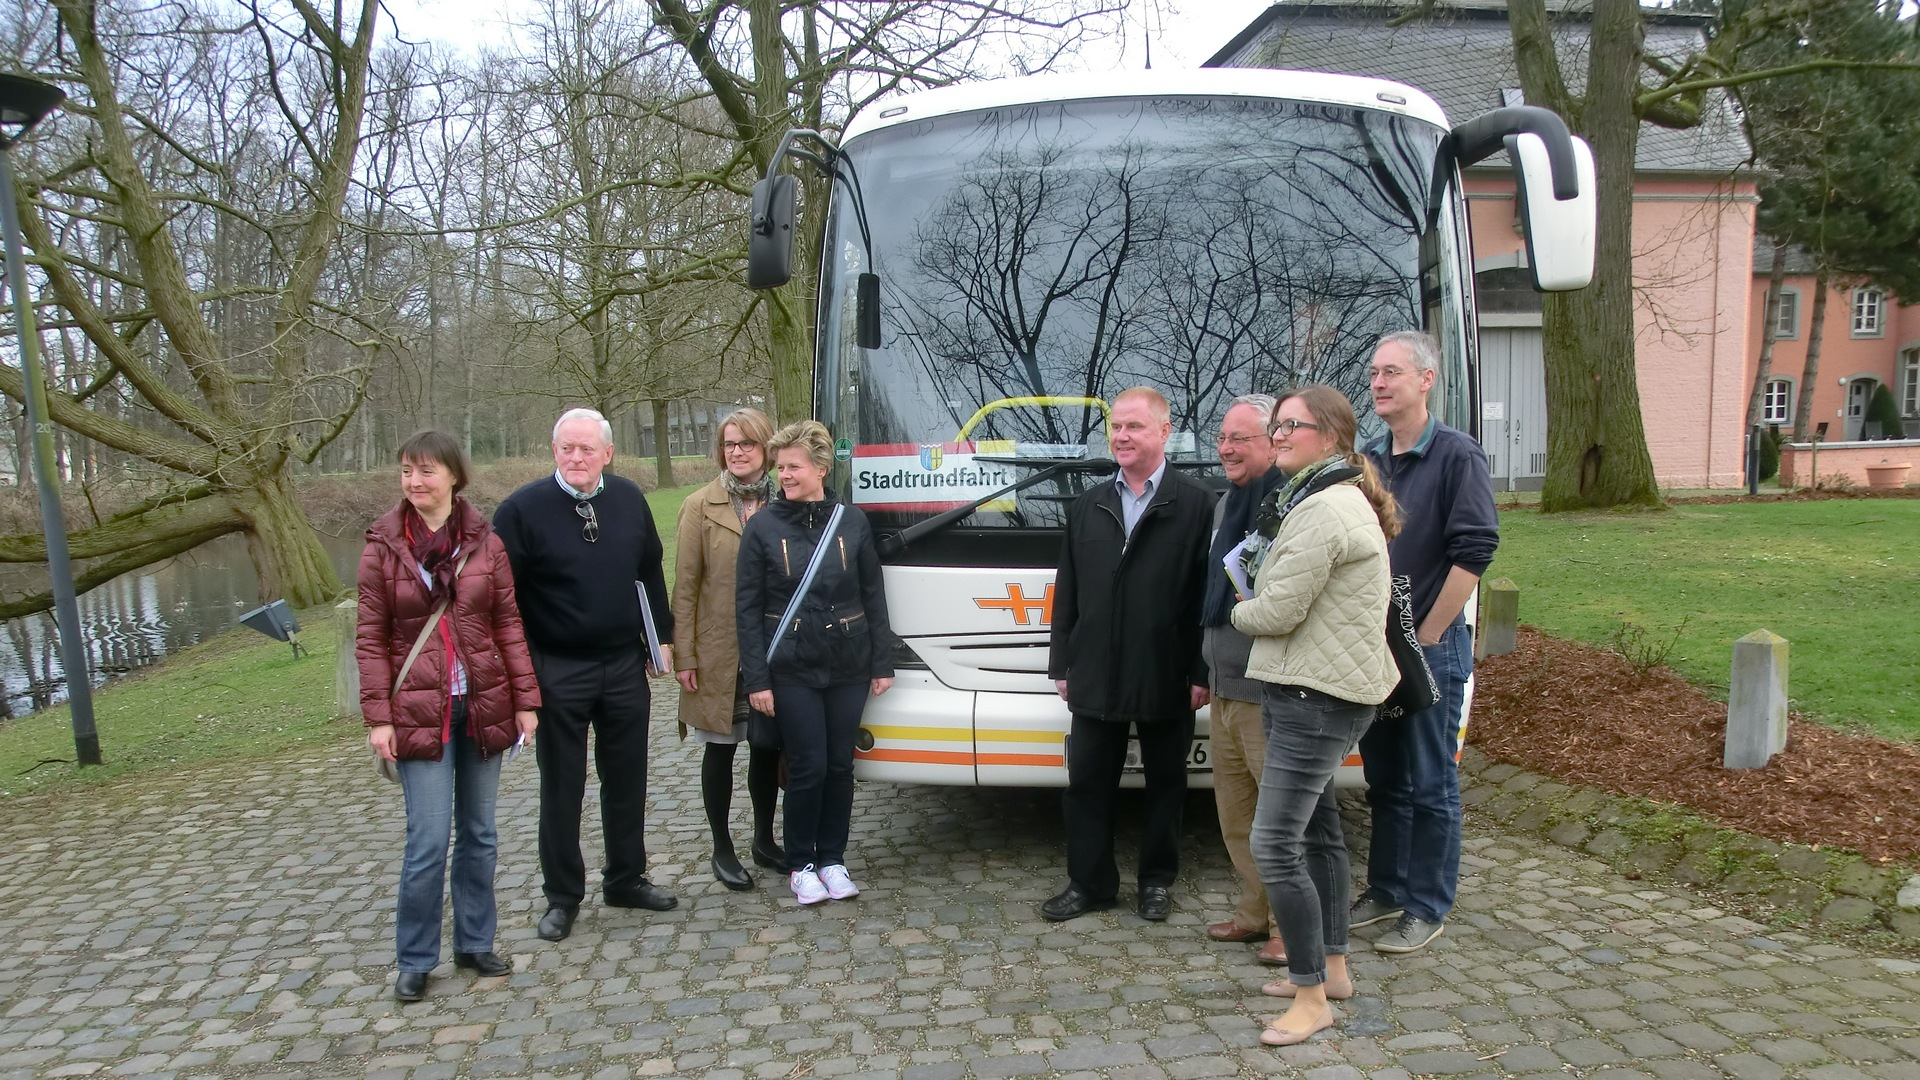 City tours by bus